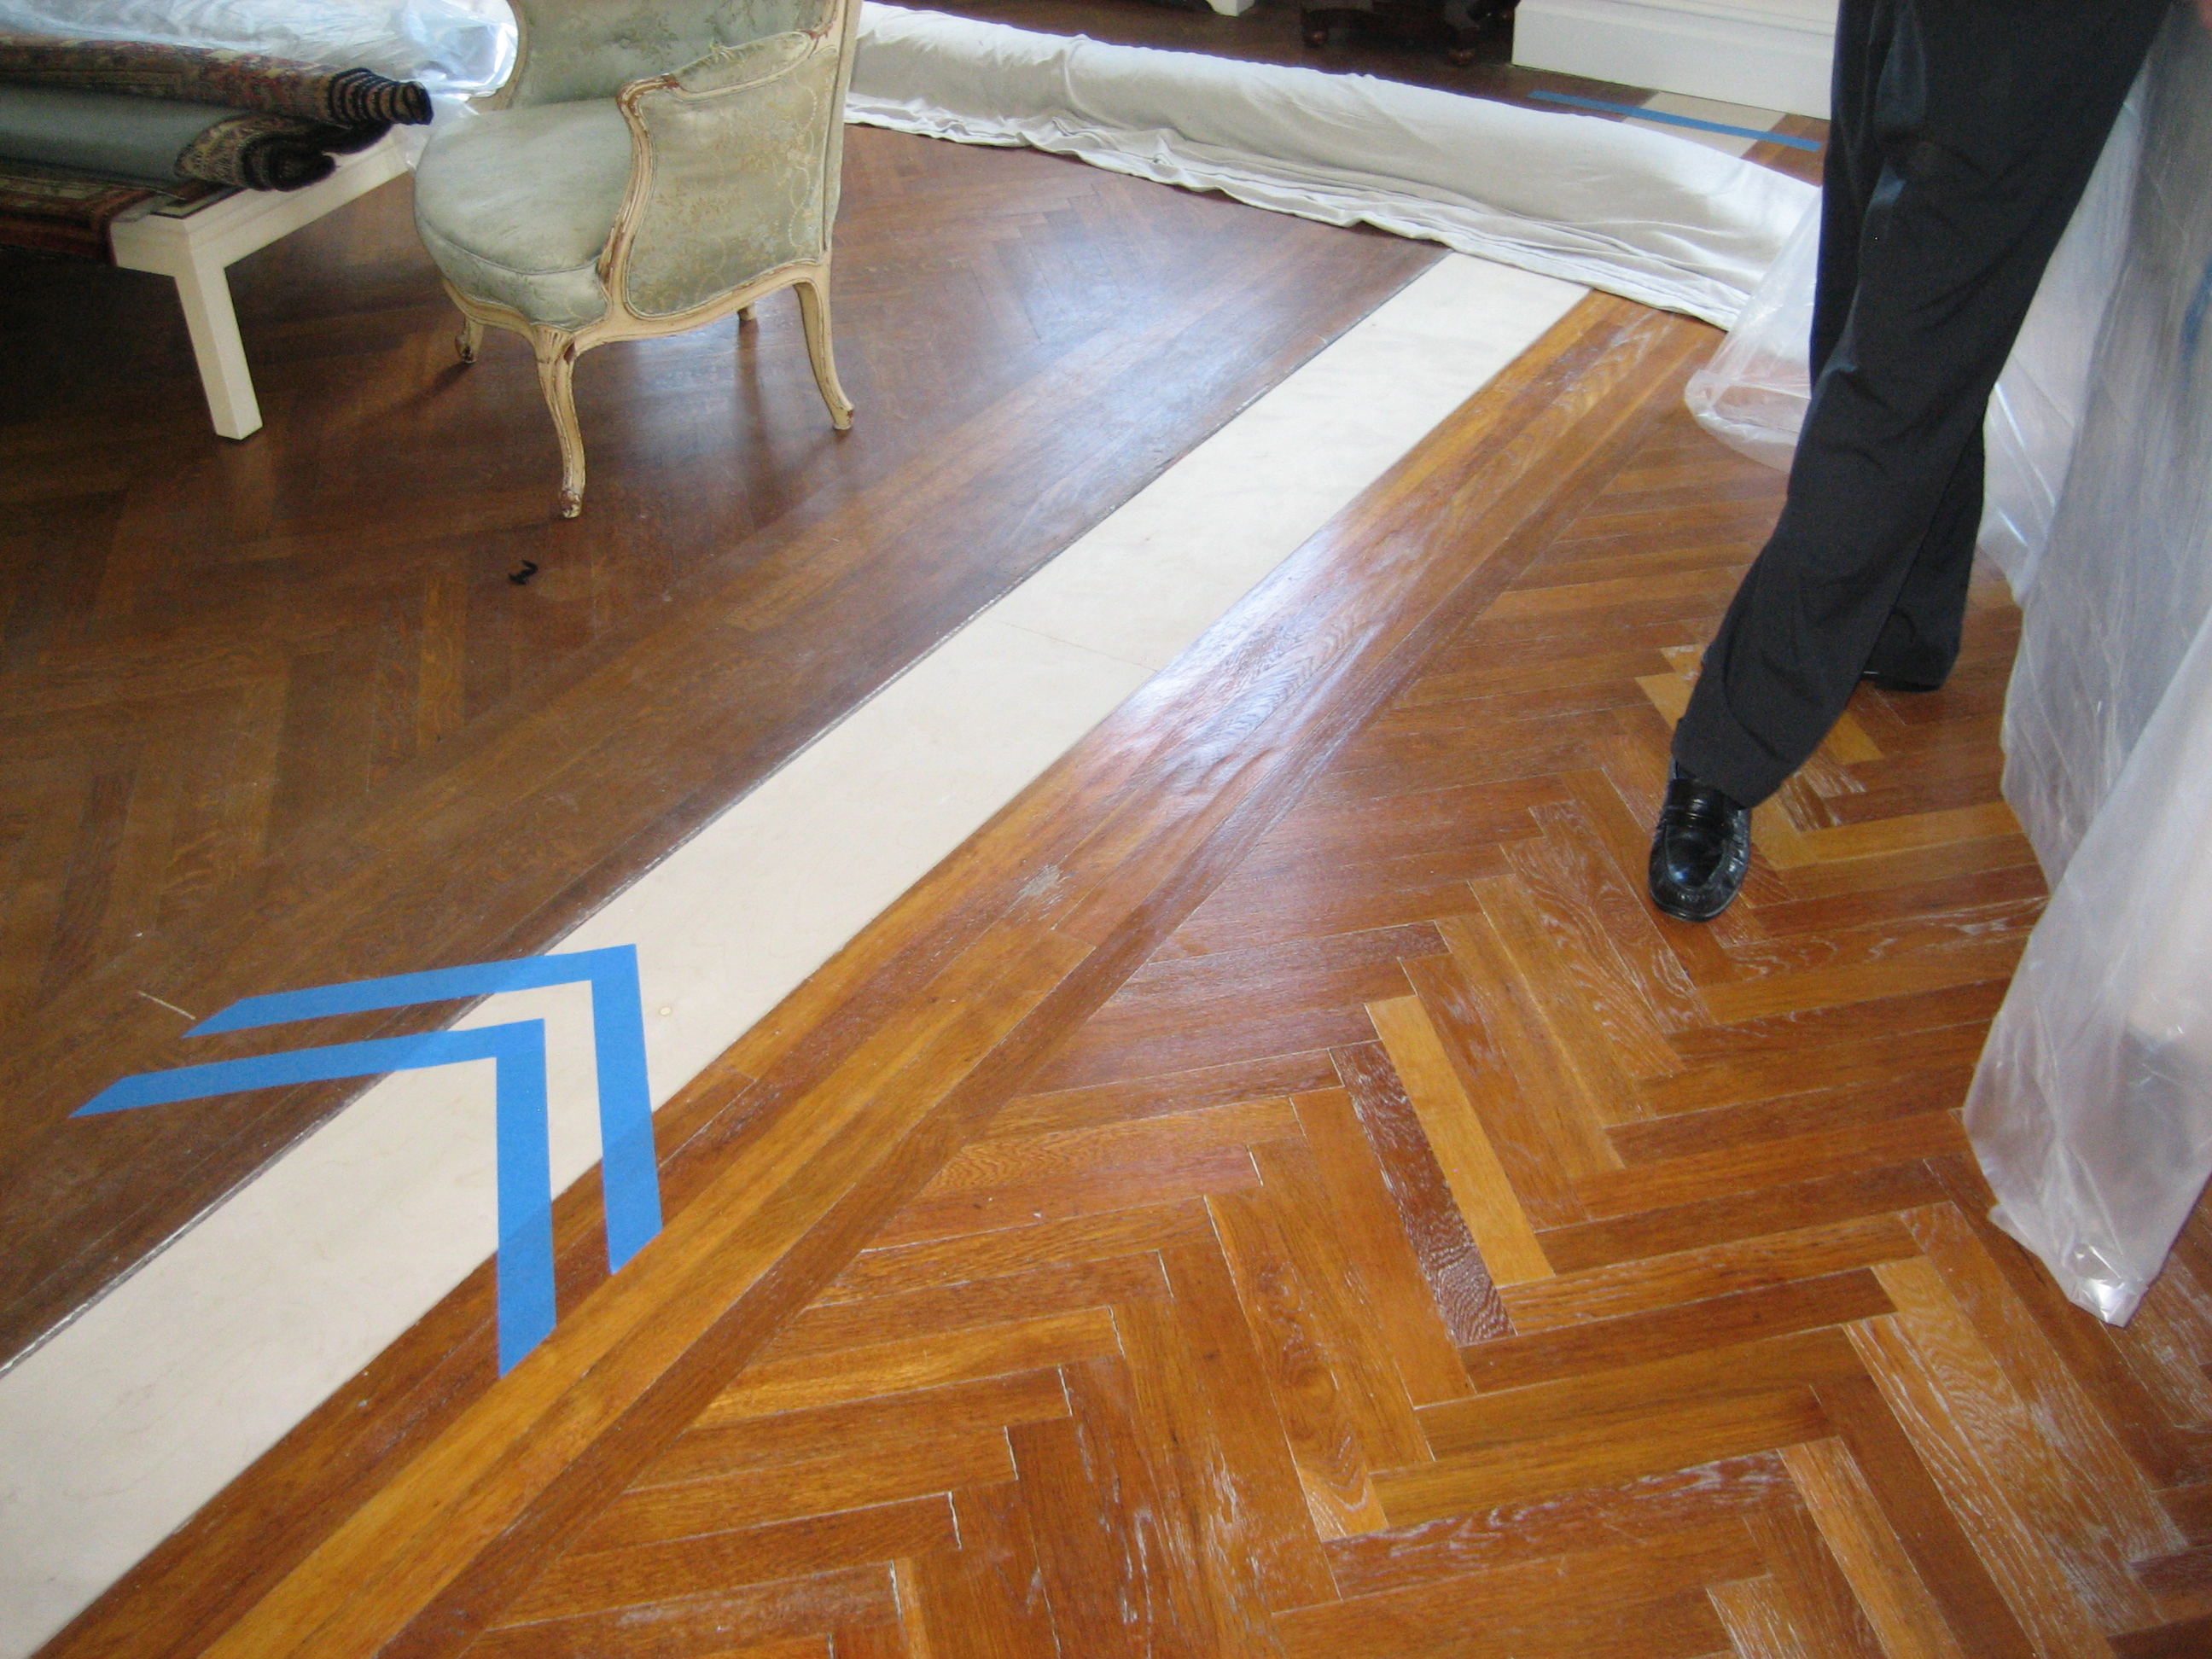 Wood Flooring Refinishing And Repair Restore Or Replicate